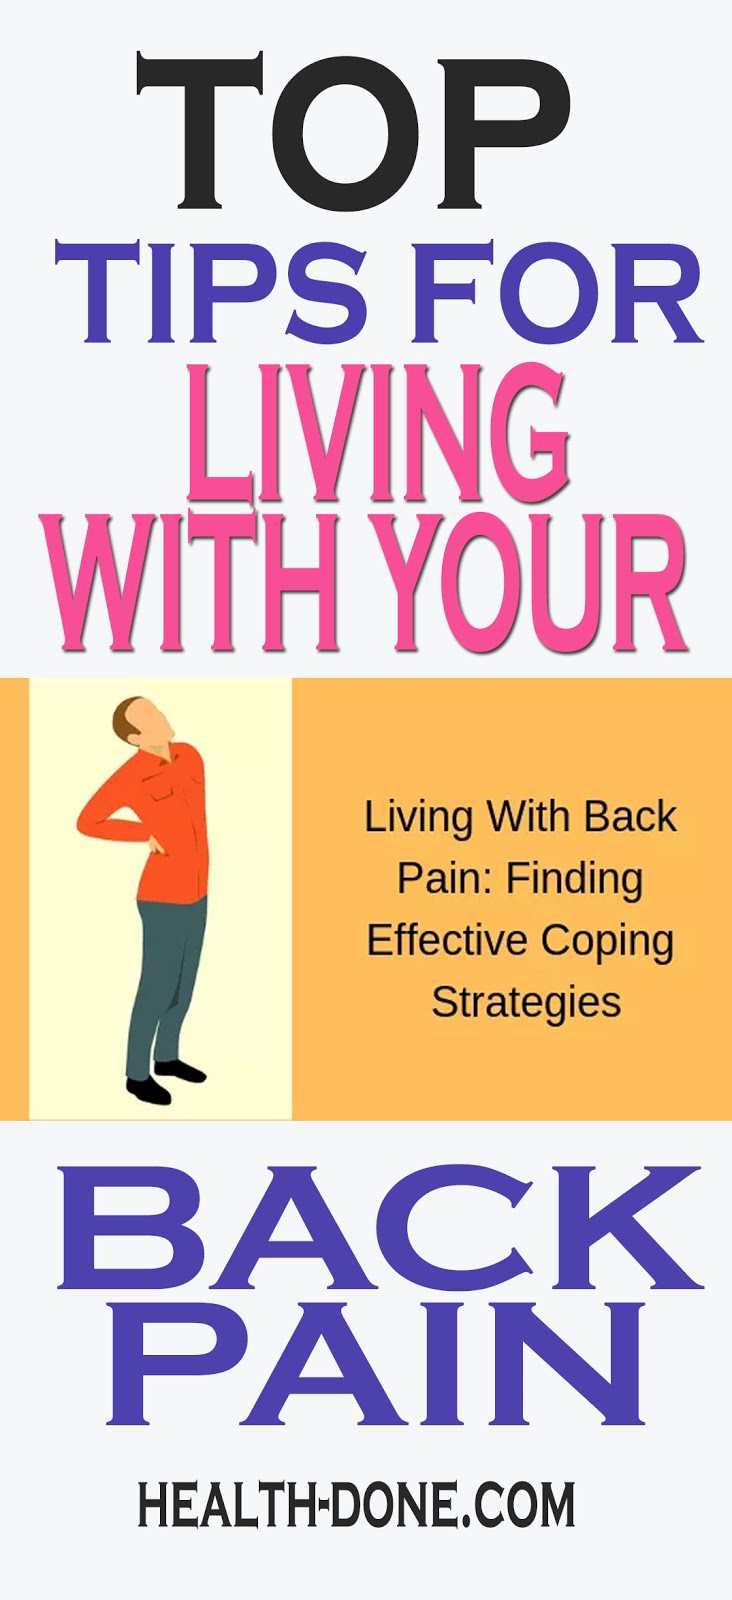 TOP TIPS FOR LIVING WITH YOUR BACK PAIN